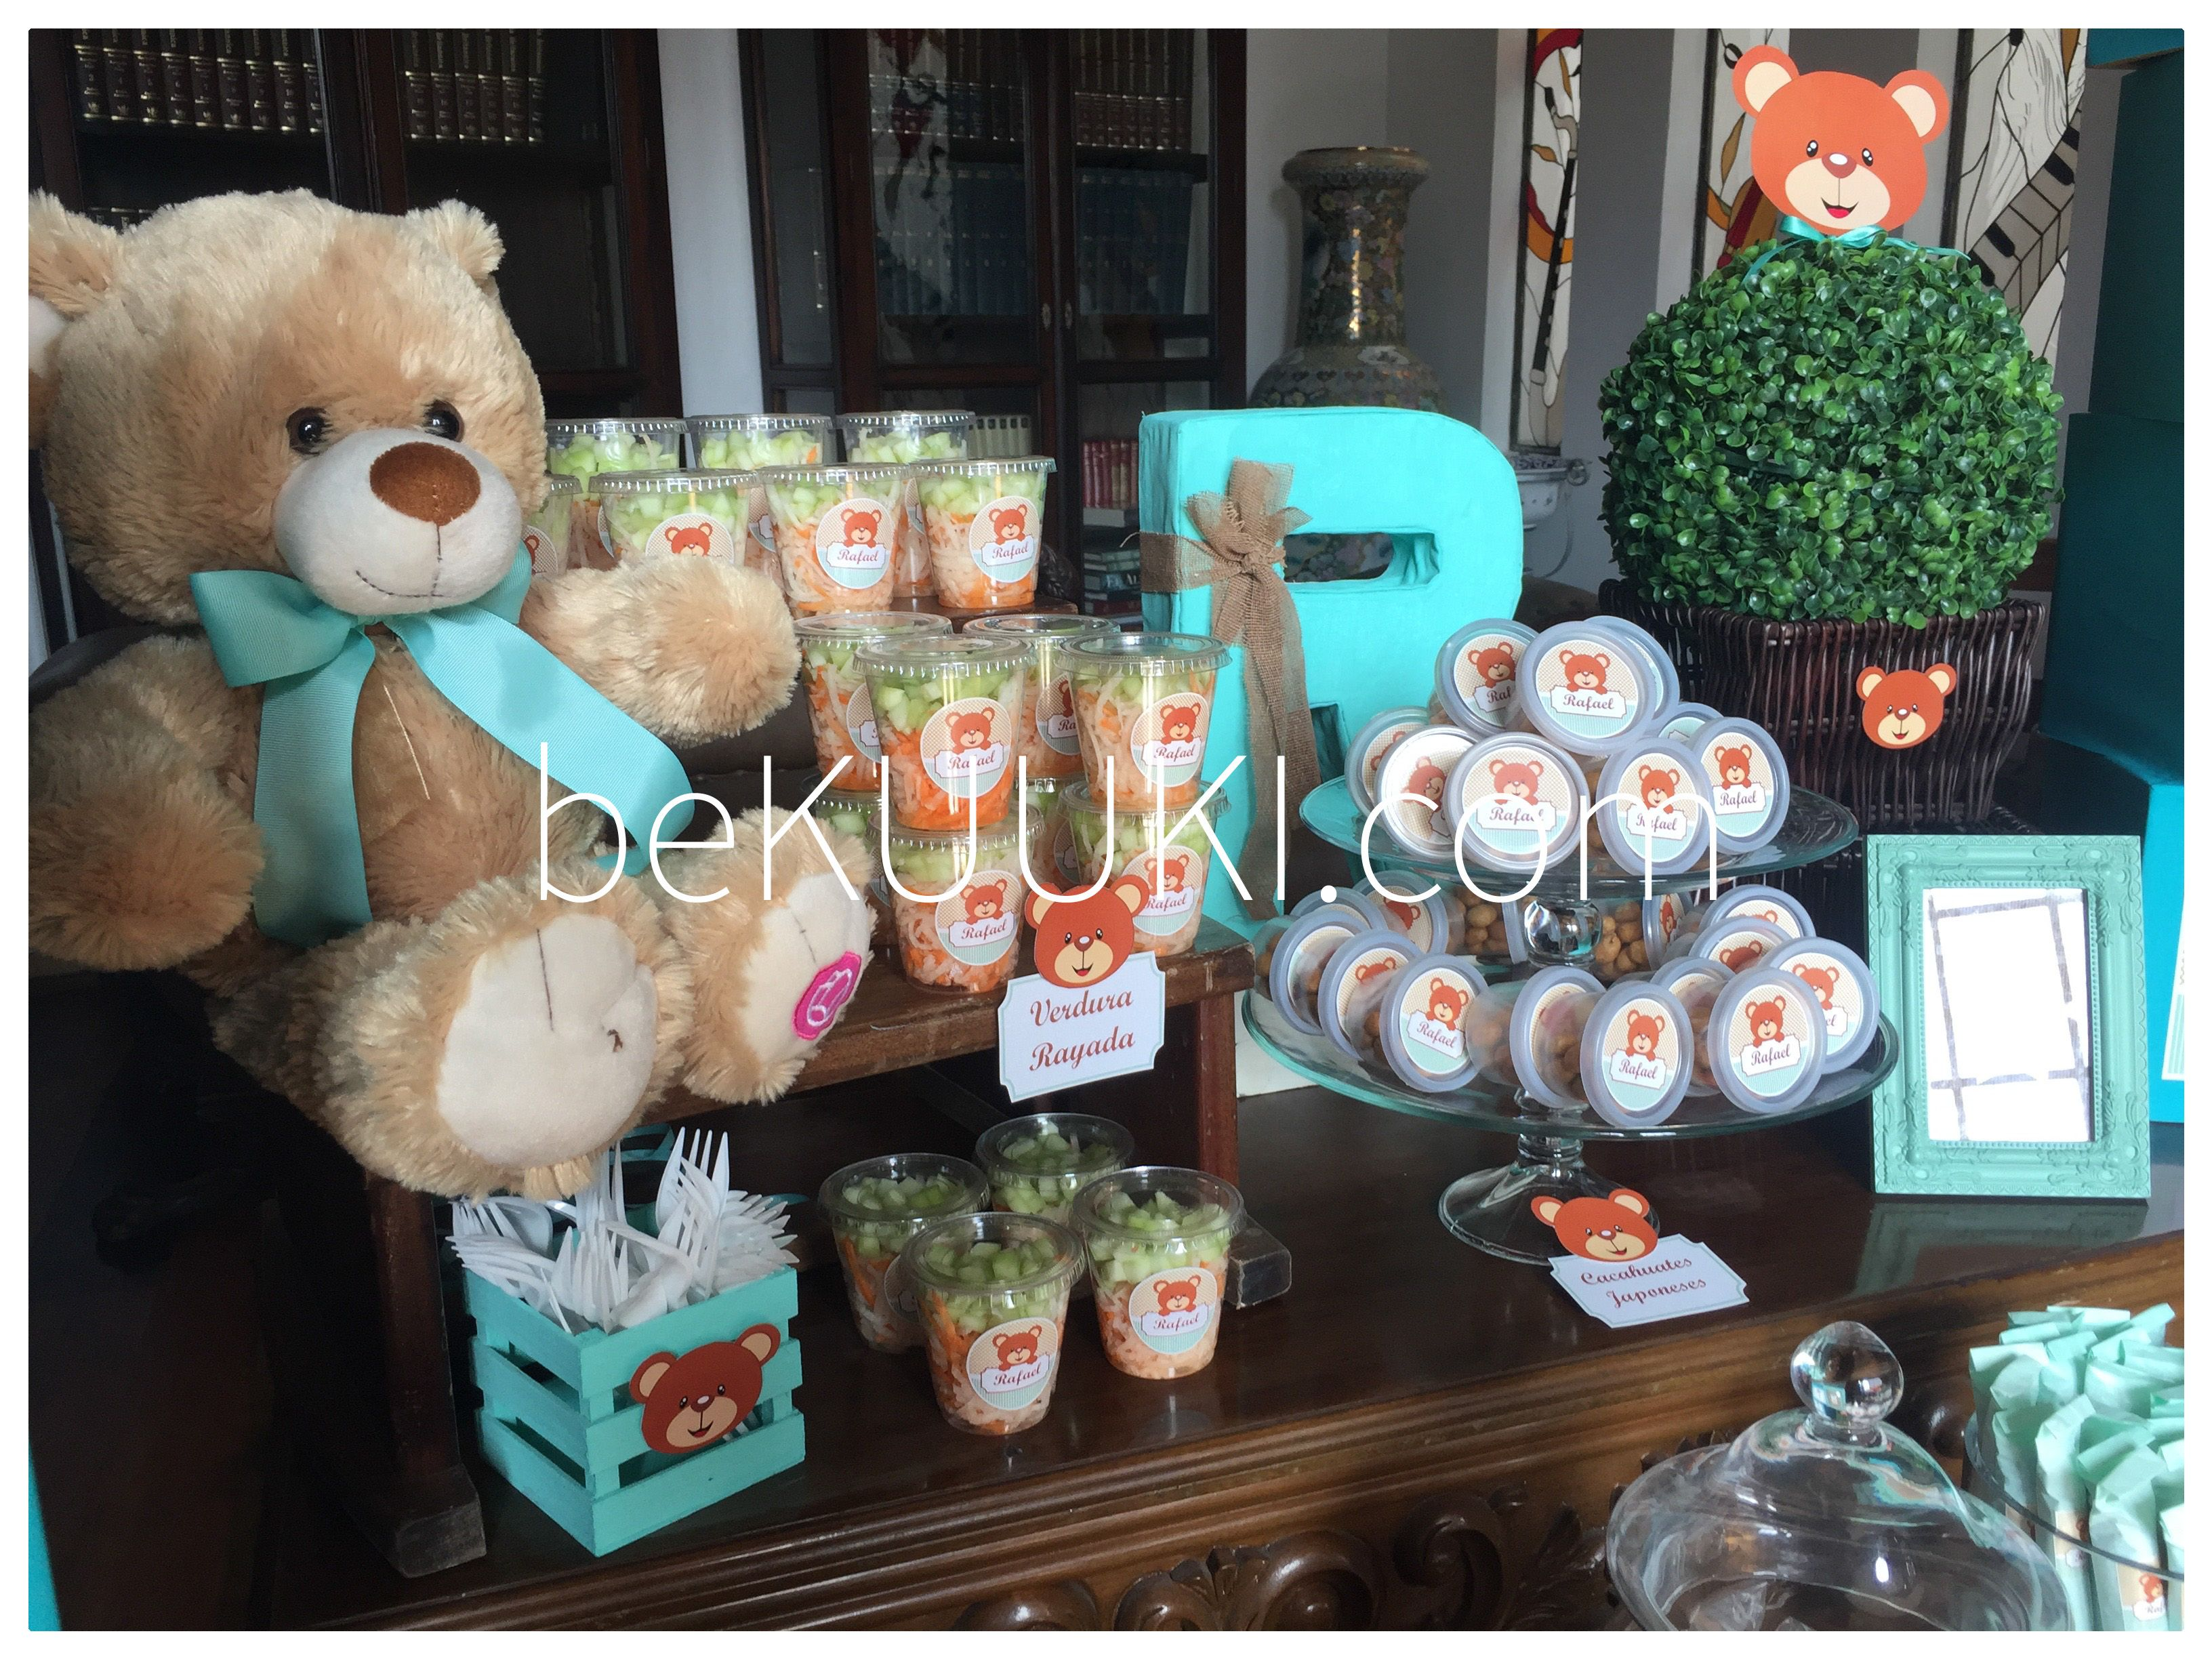 Mesa de dulces candy bar baby shower ni o oso for Mesa de dulces para baby shower nino